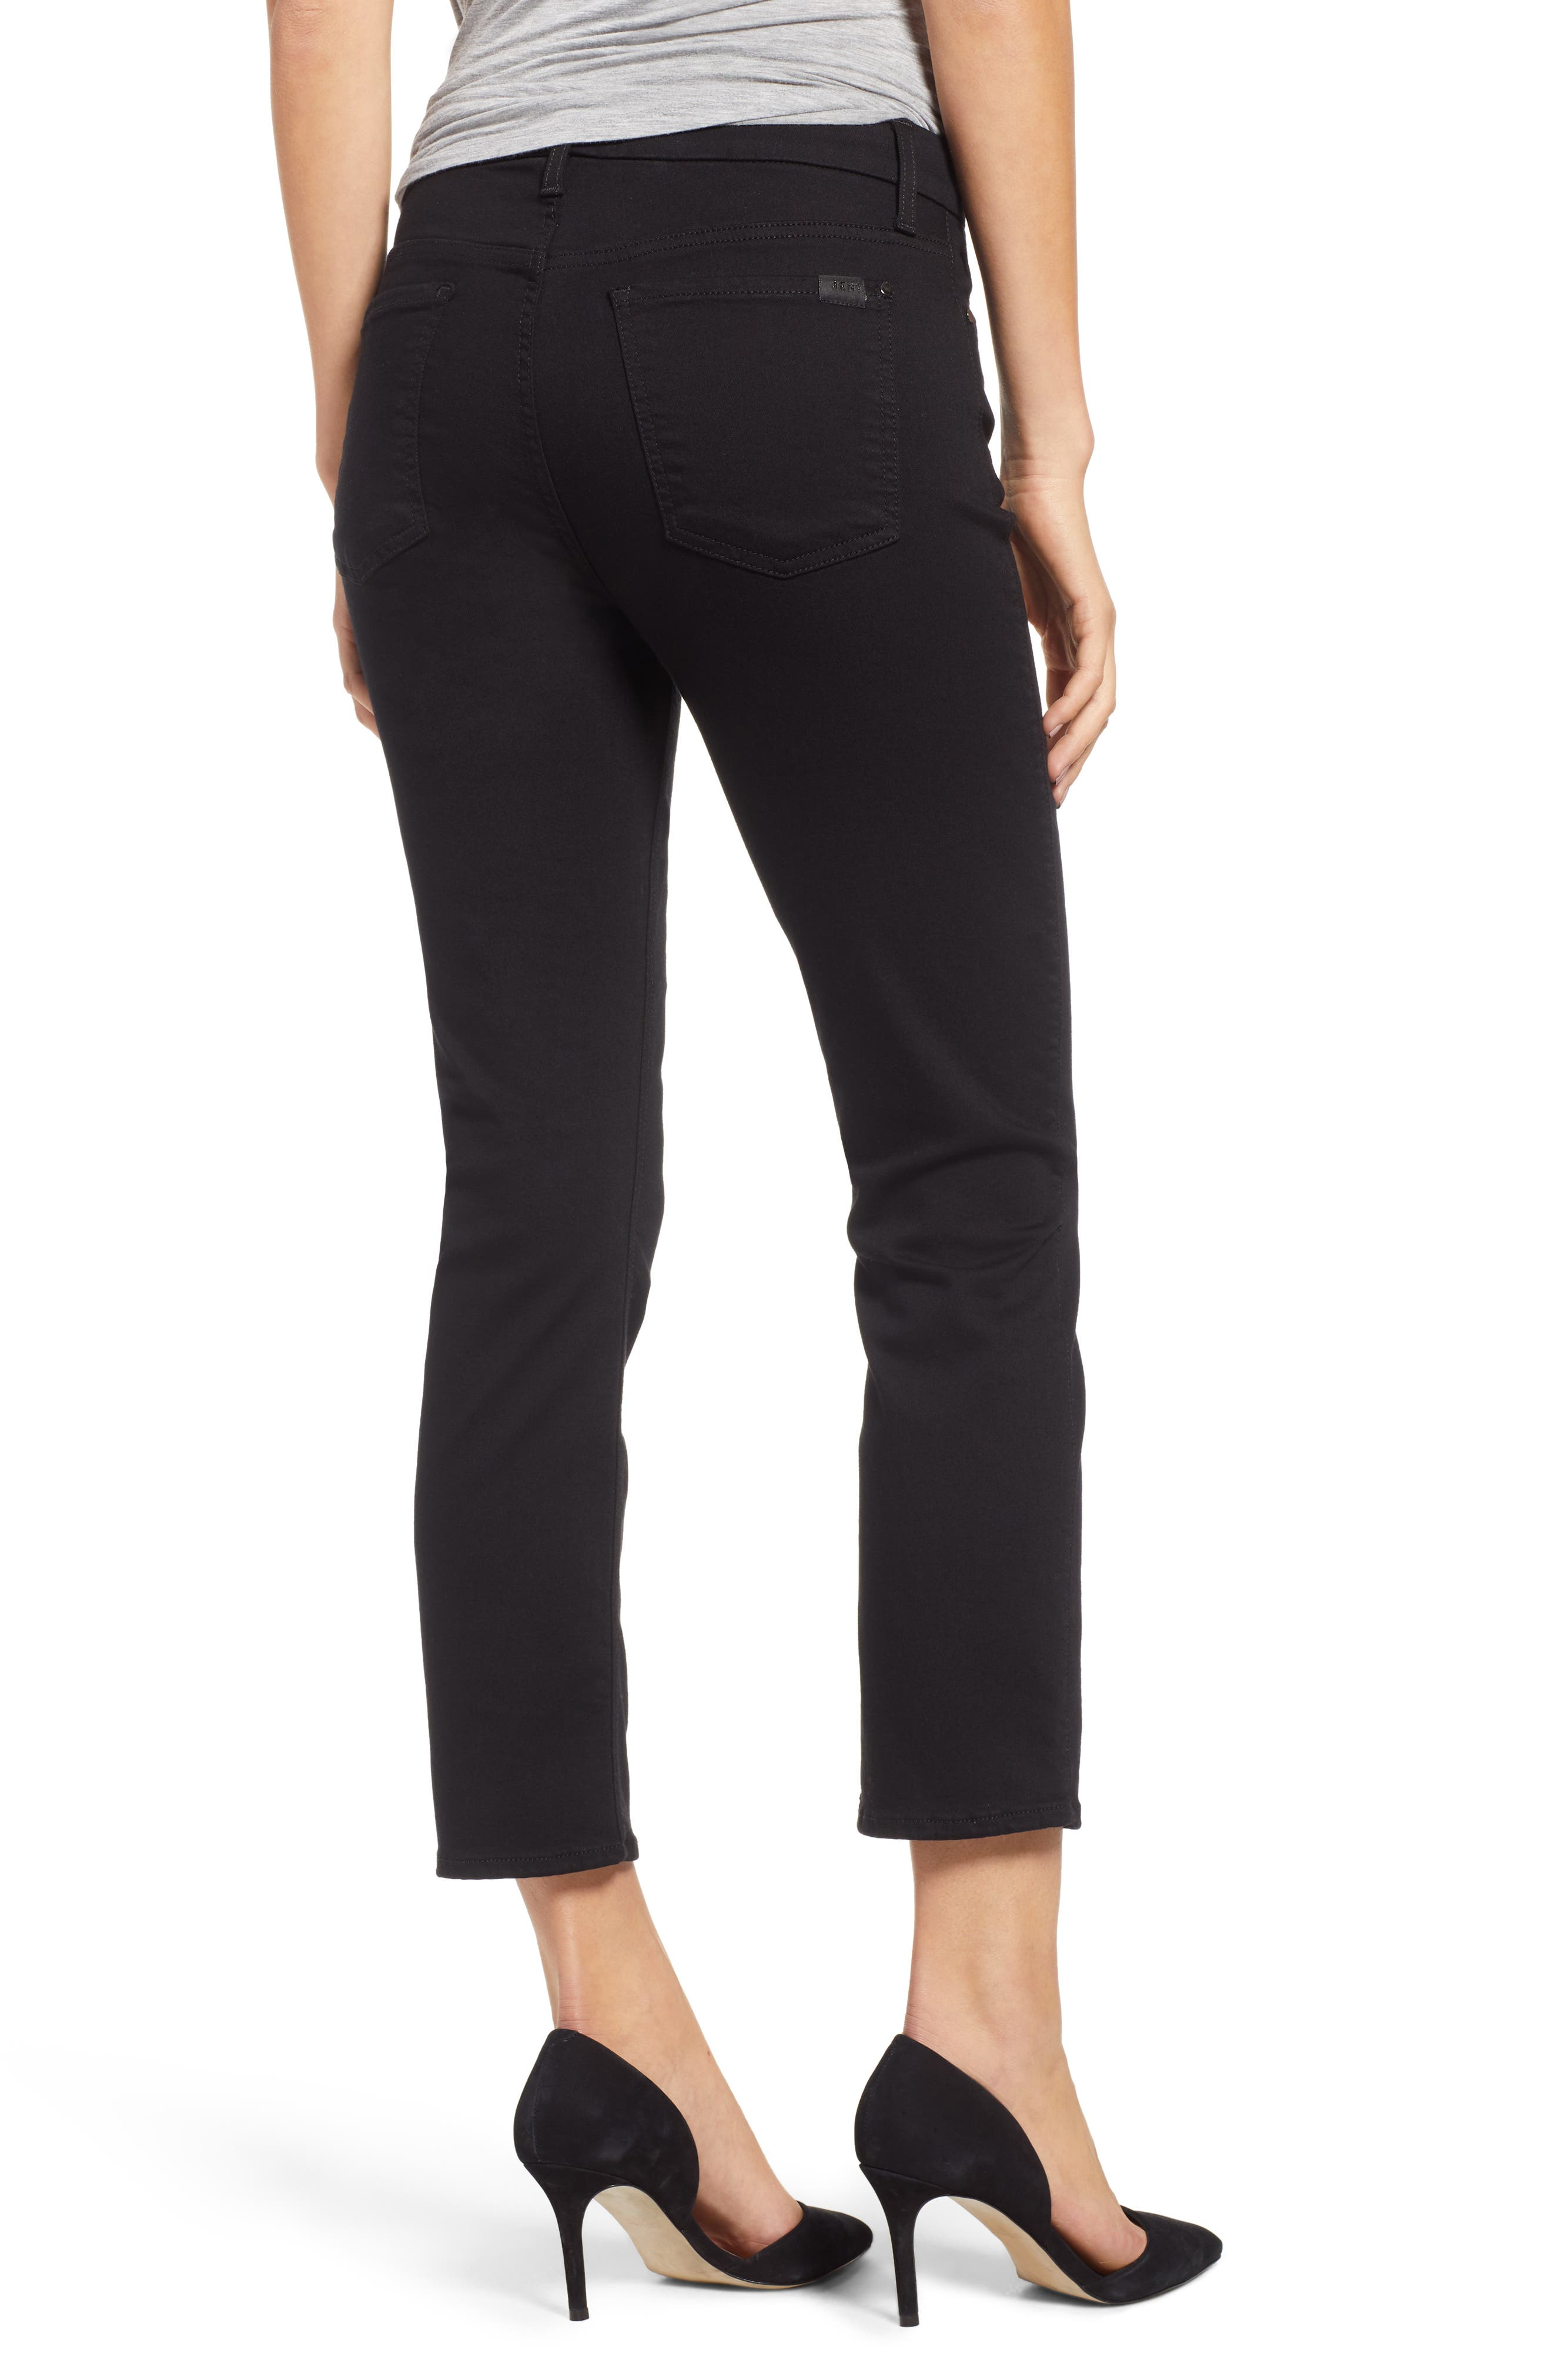 JEN7 BY 7 FOR ALL MANKIND, Stretch Crop Straight Leg Jeans, Alternate thumbnail 2, color, BLACK